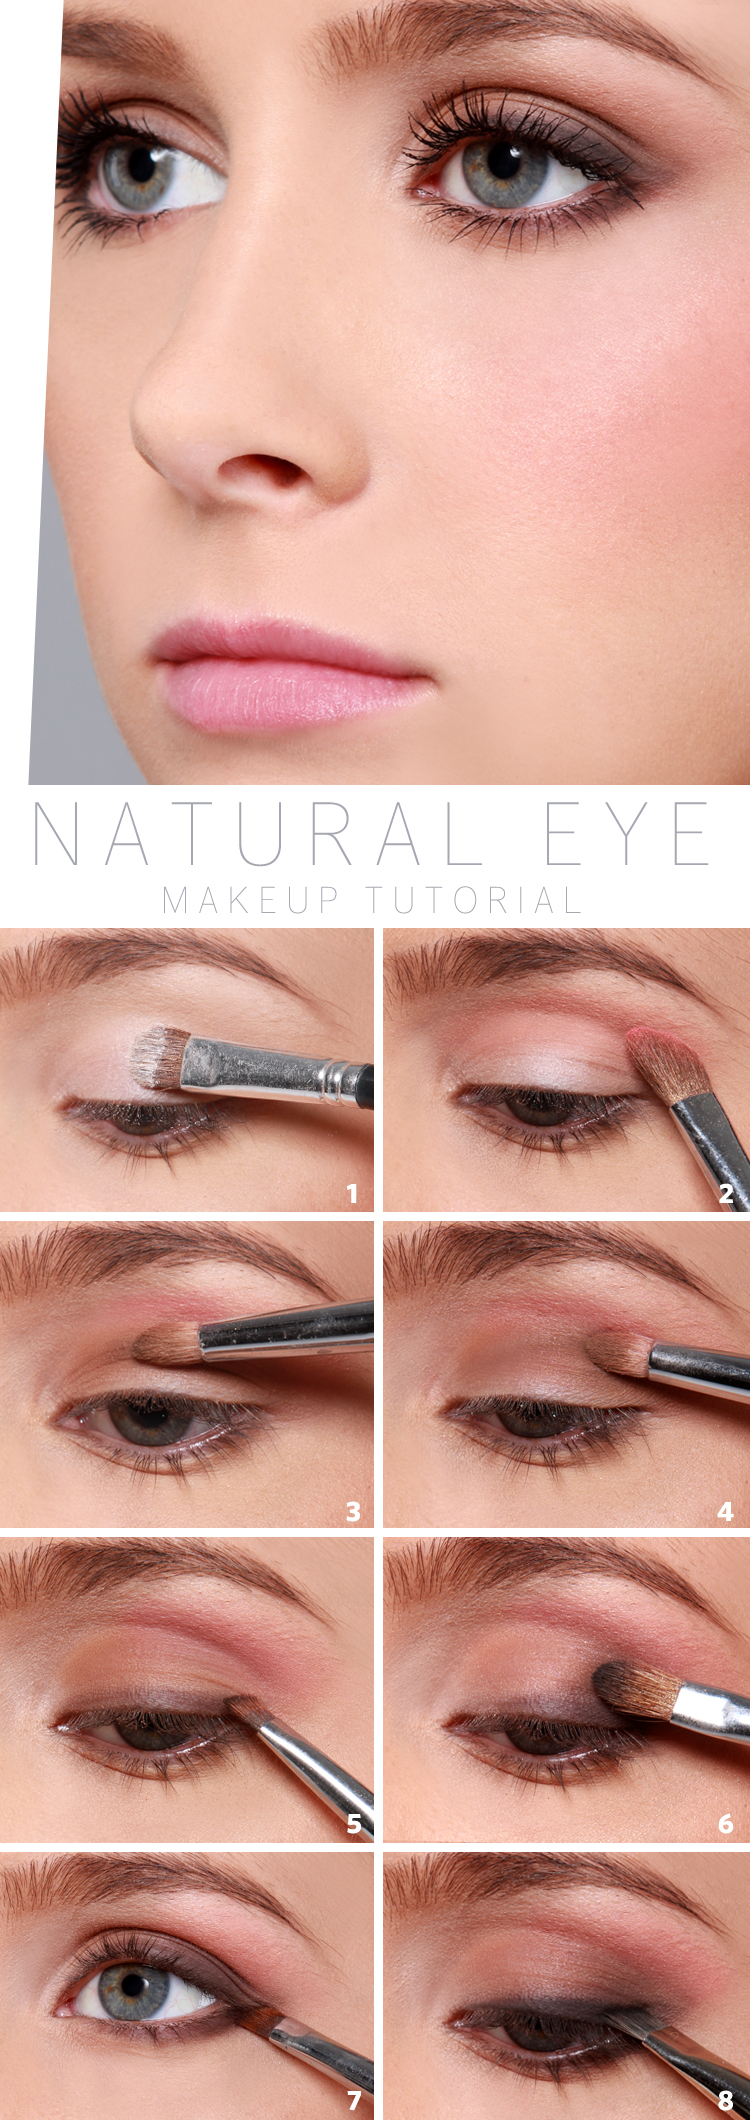 Lulus How-To: Natural Eye Makeup Tutorial - Lulus.com Fashion Blog